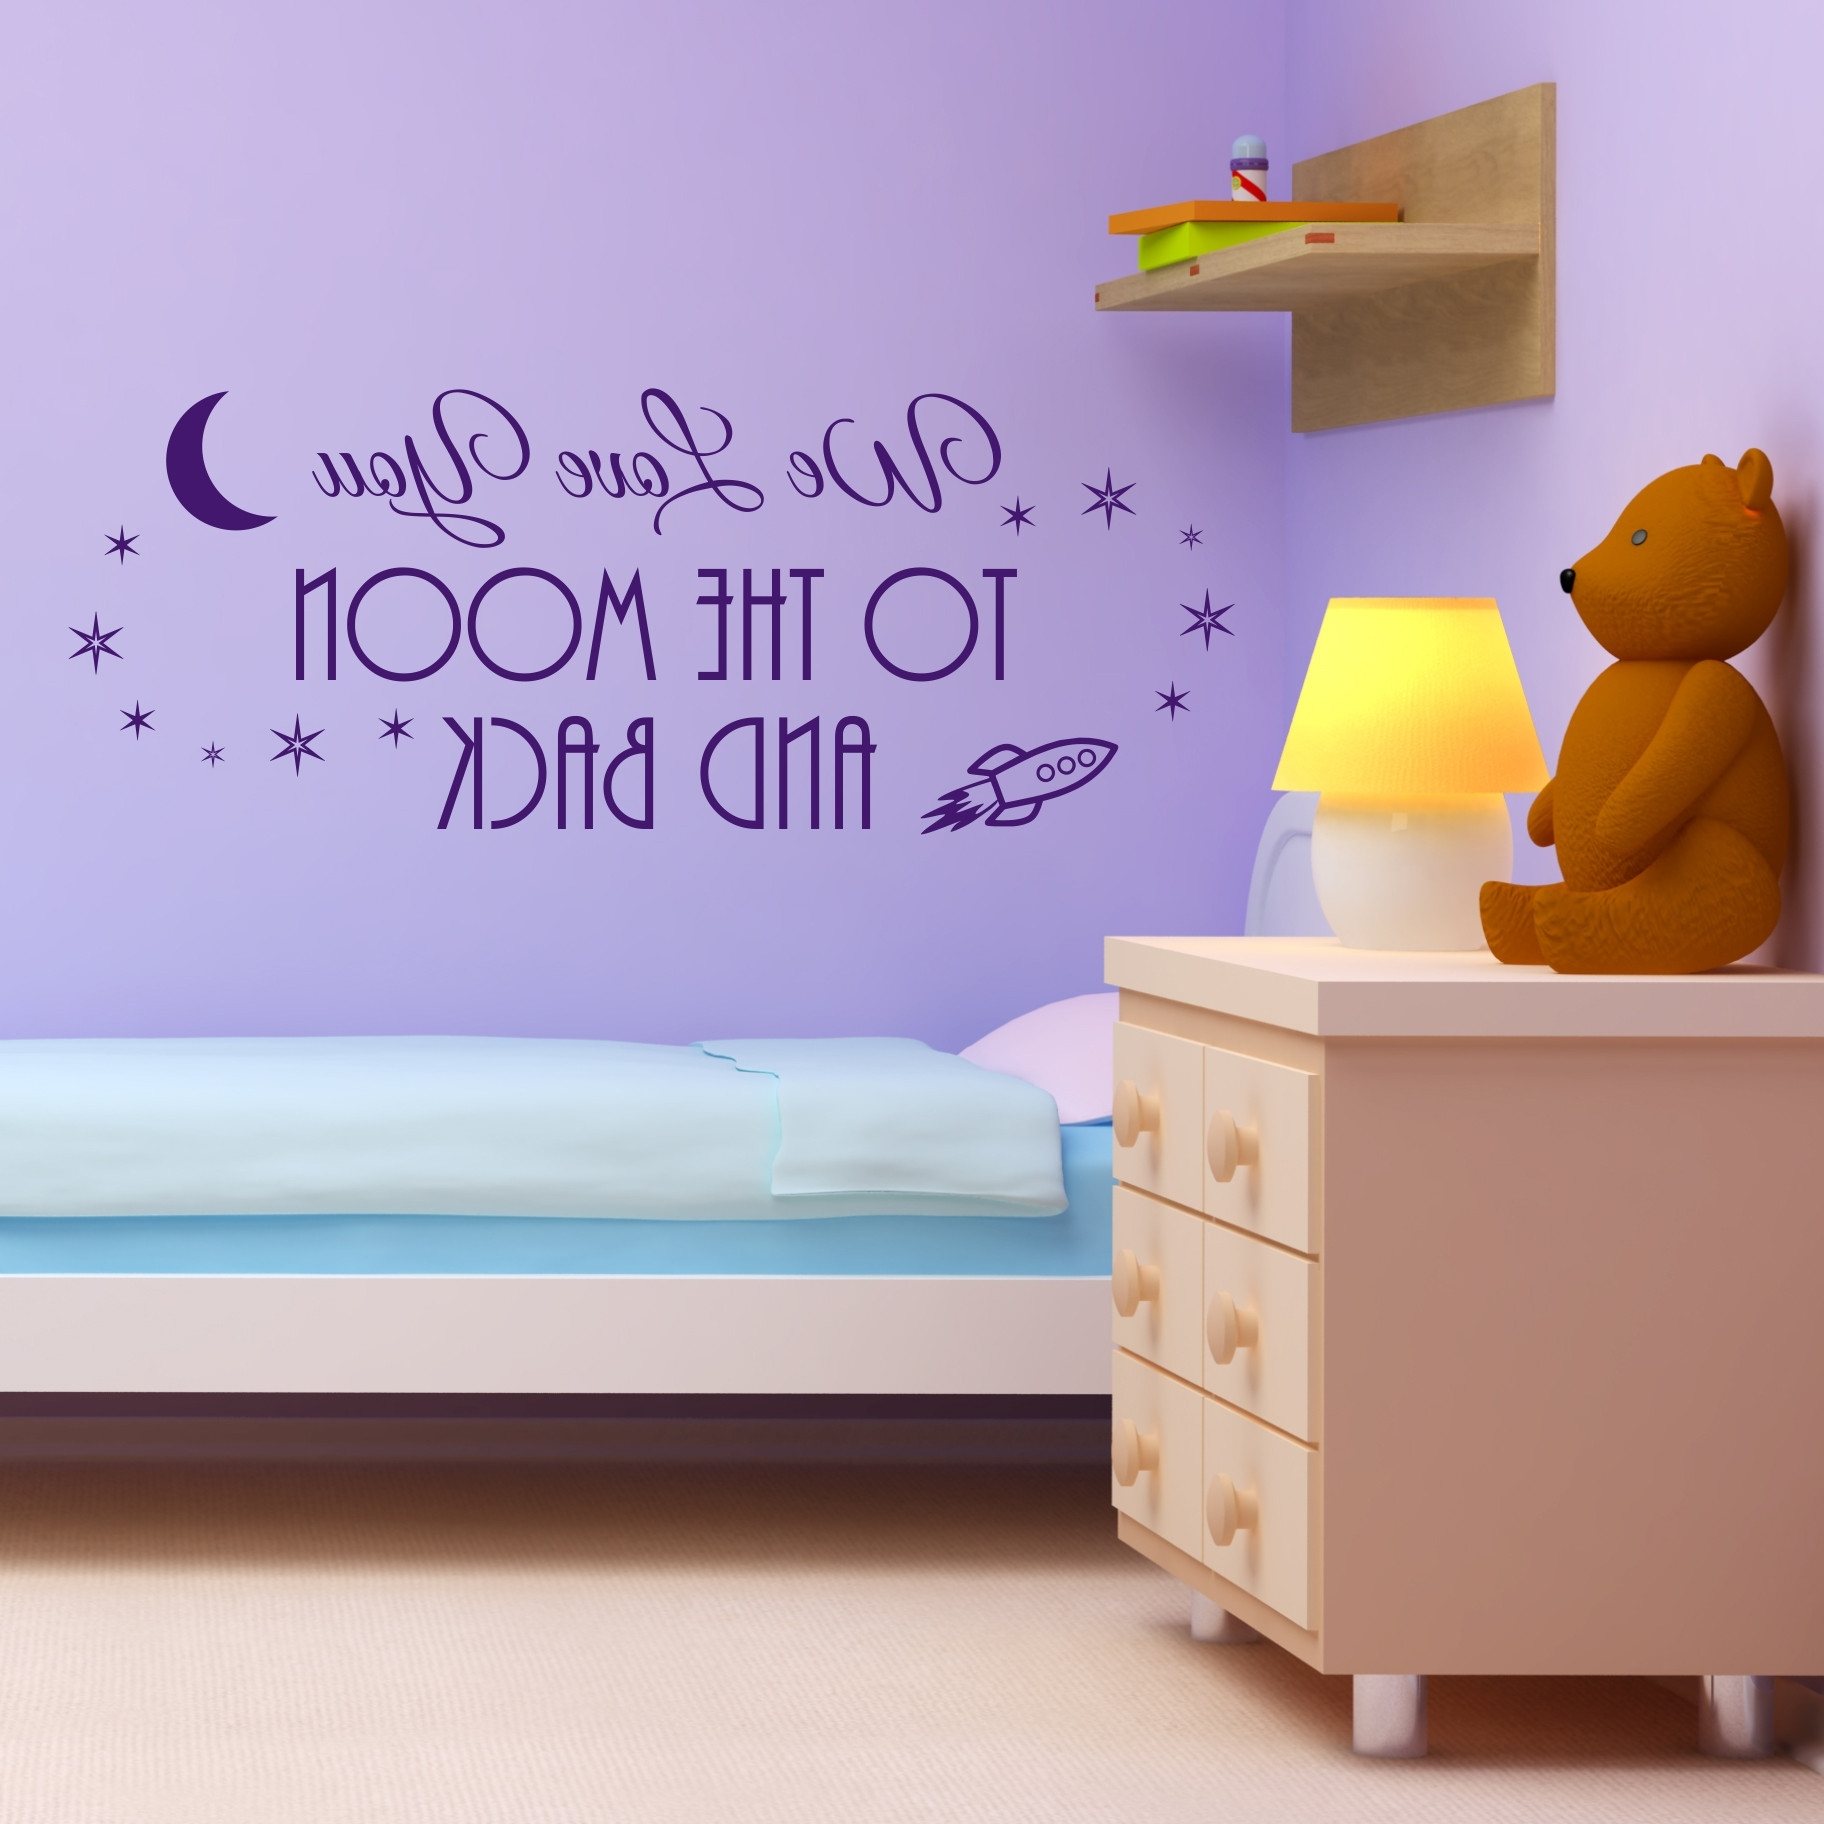 I Love You To The Moon And Back Wall Art Throughout Trendy Nobby Design I Love You To The Moon And Back Wall Art – Ishlepark (Gallery 19 of 20)